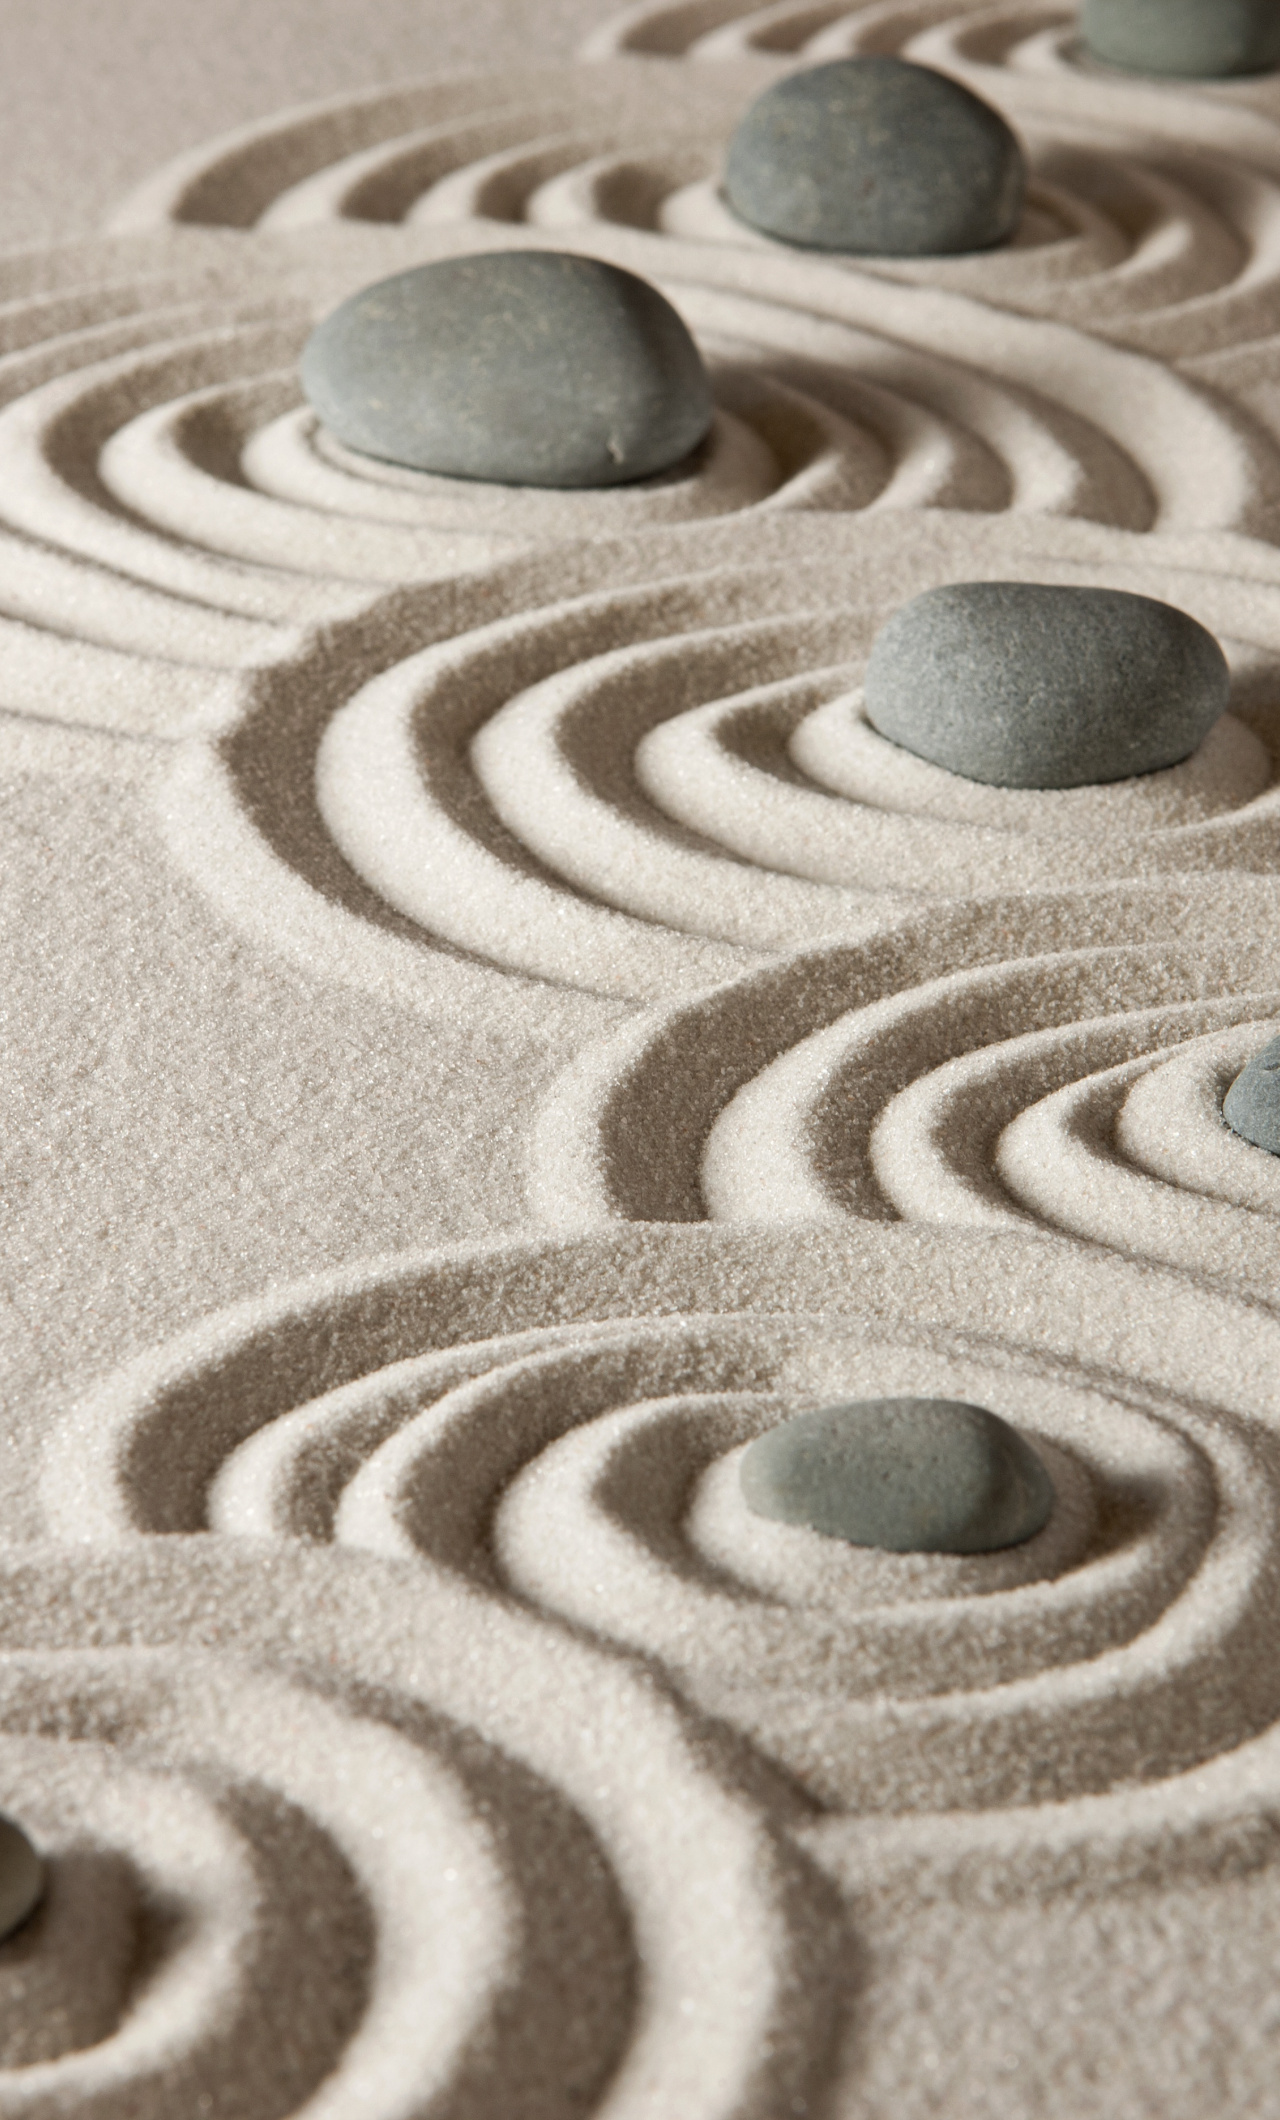 Download Stones and sand rocks zen pattern wallpaper 1280x2120